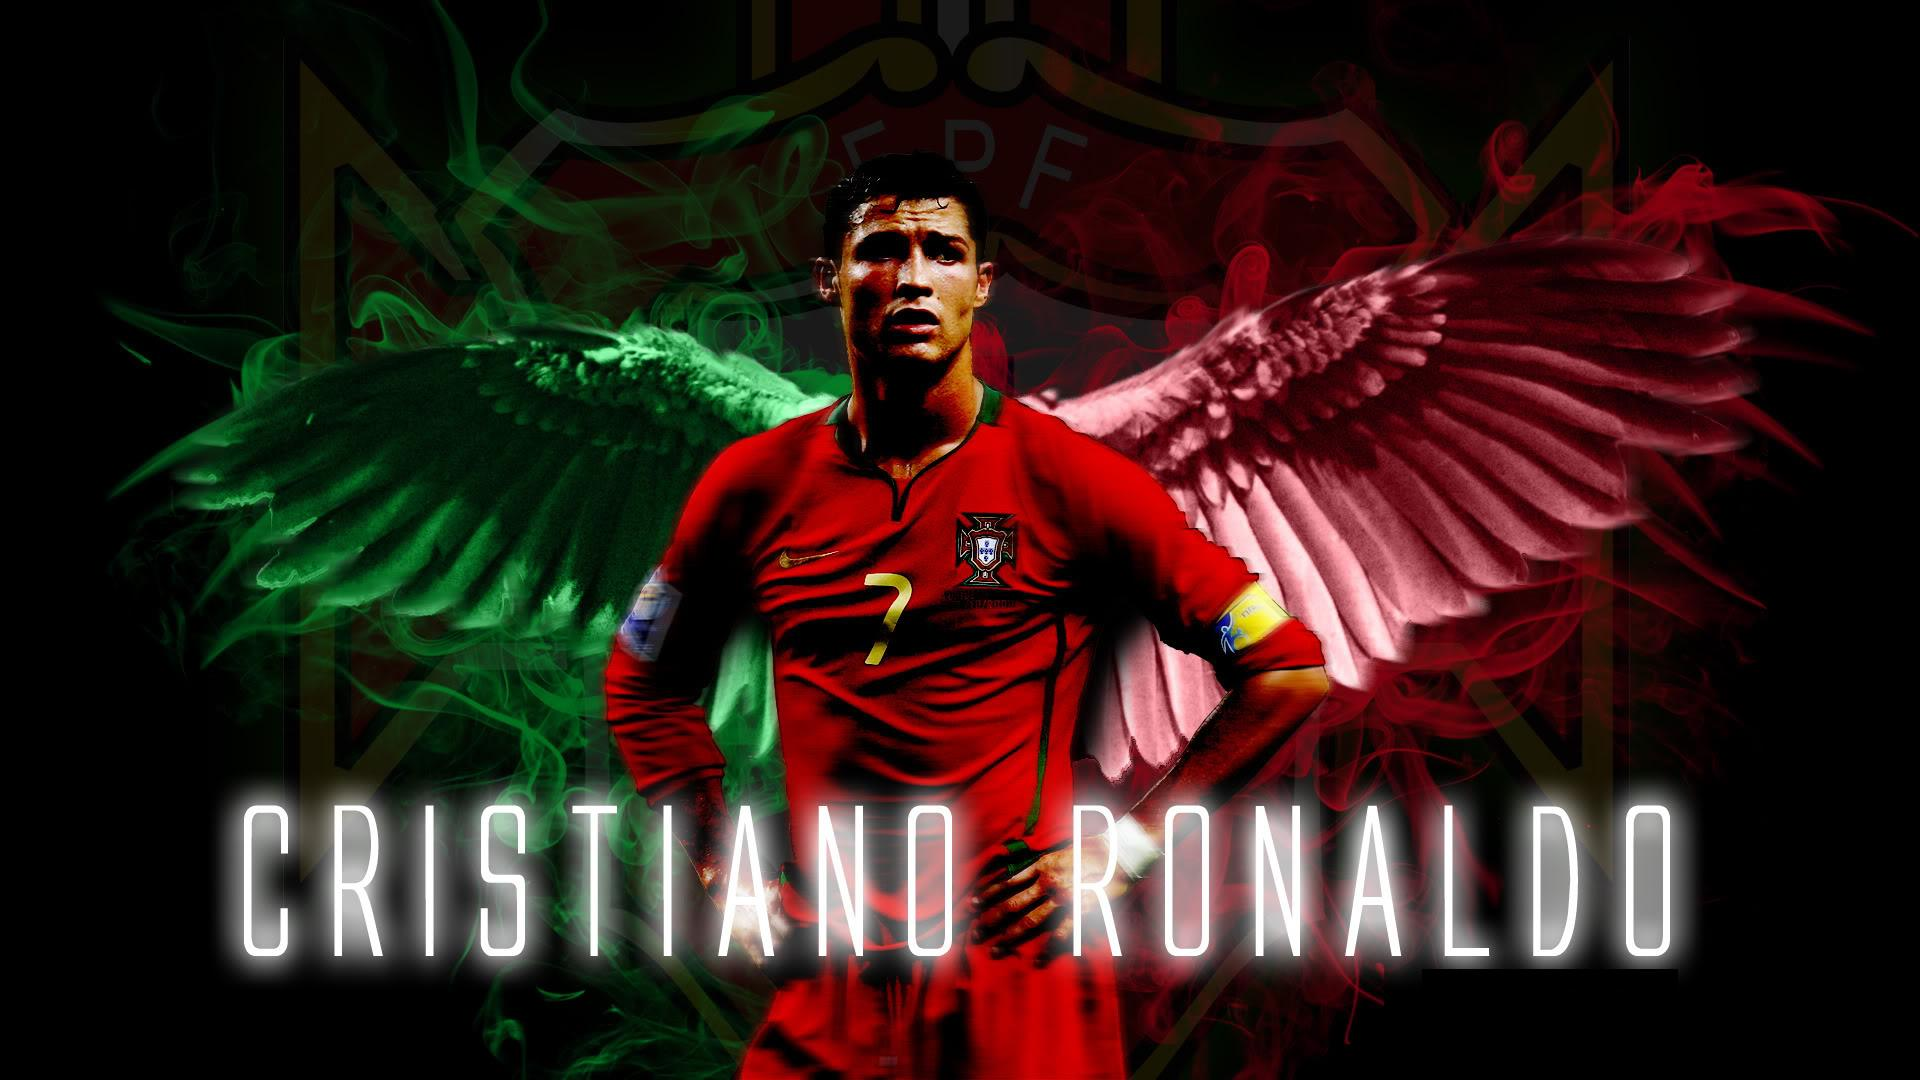 Portugal-Ronaldo-1920%C3%971080-Portugal-Soccer-Adorable-Wallpape-wallpaper-wpc9008619